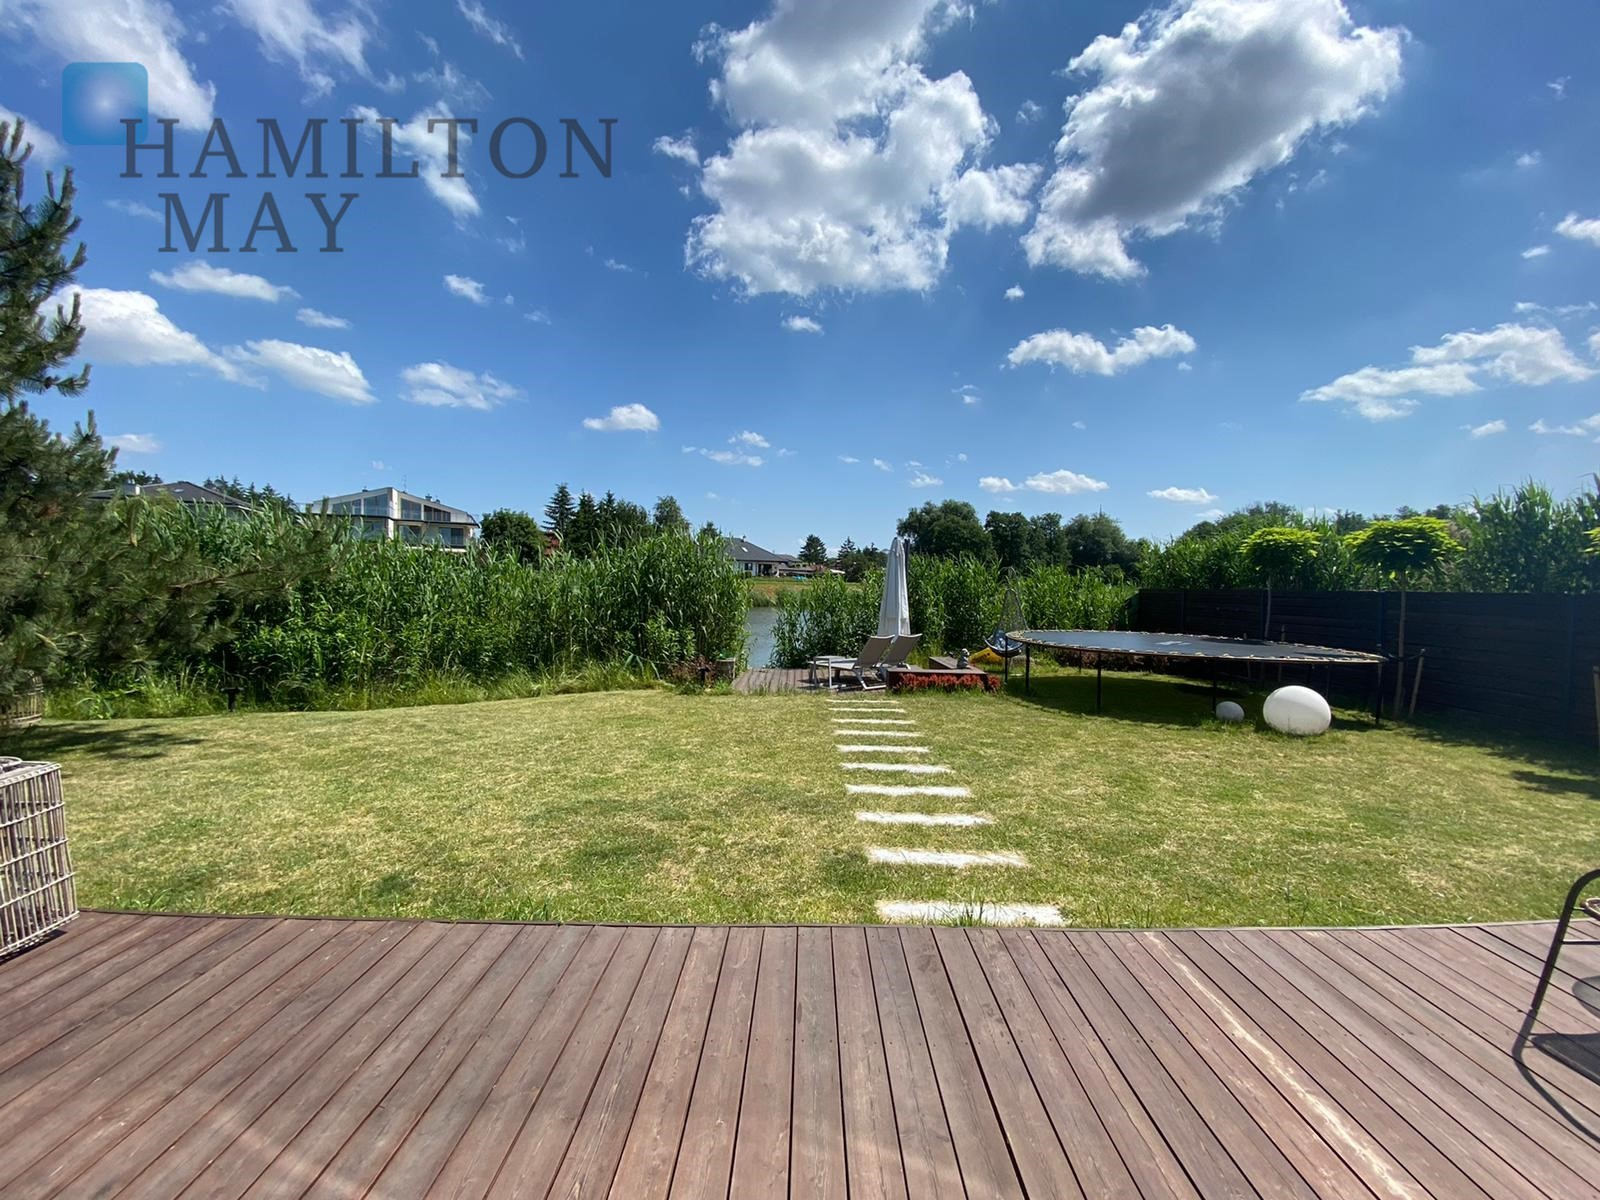 Unique, detached, new family home with lake access in Wawer Warsaw for sale